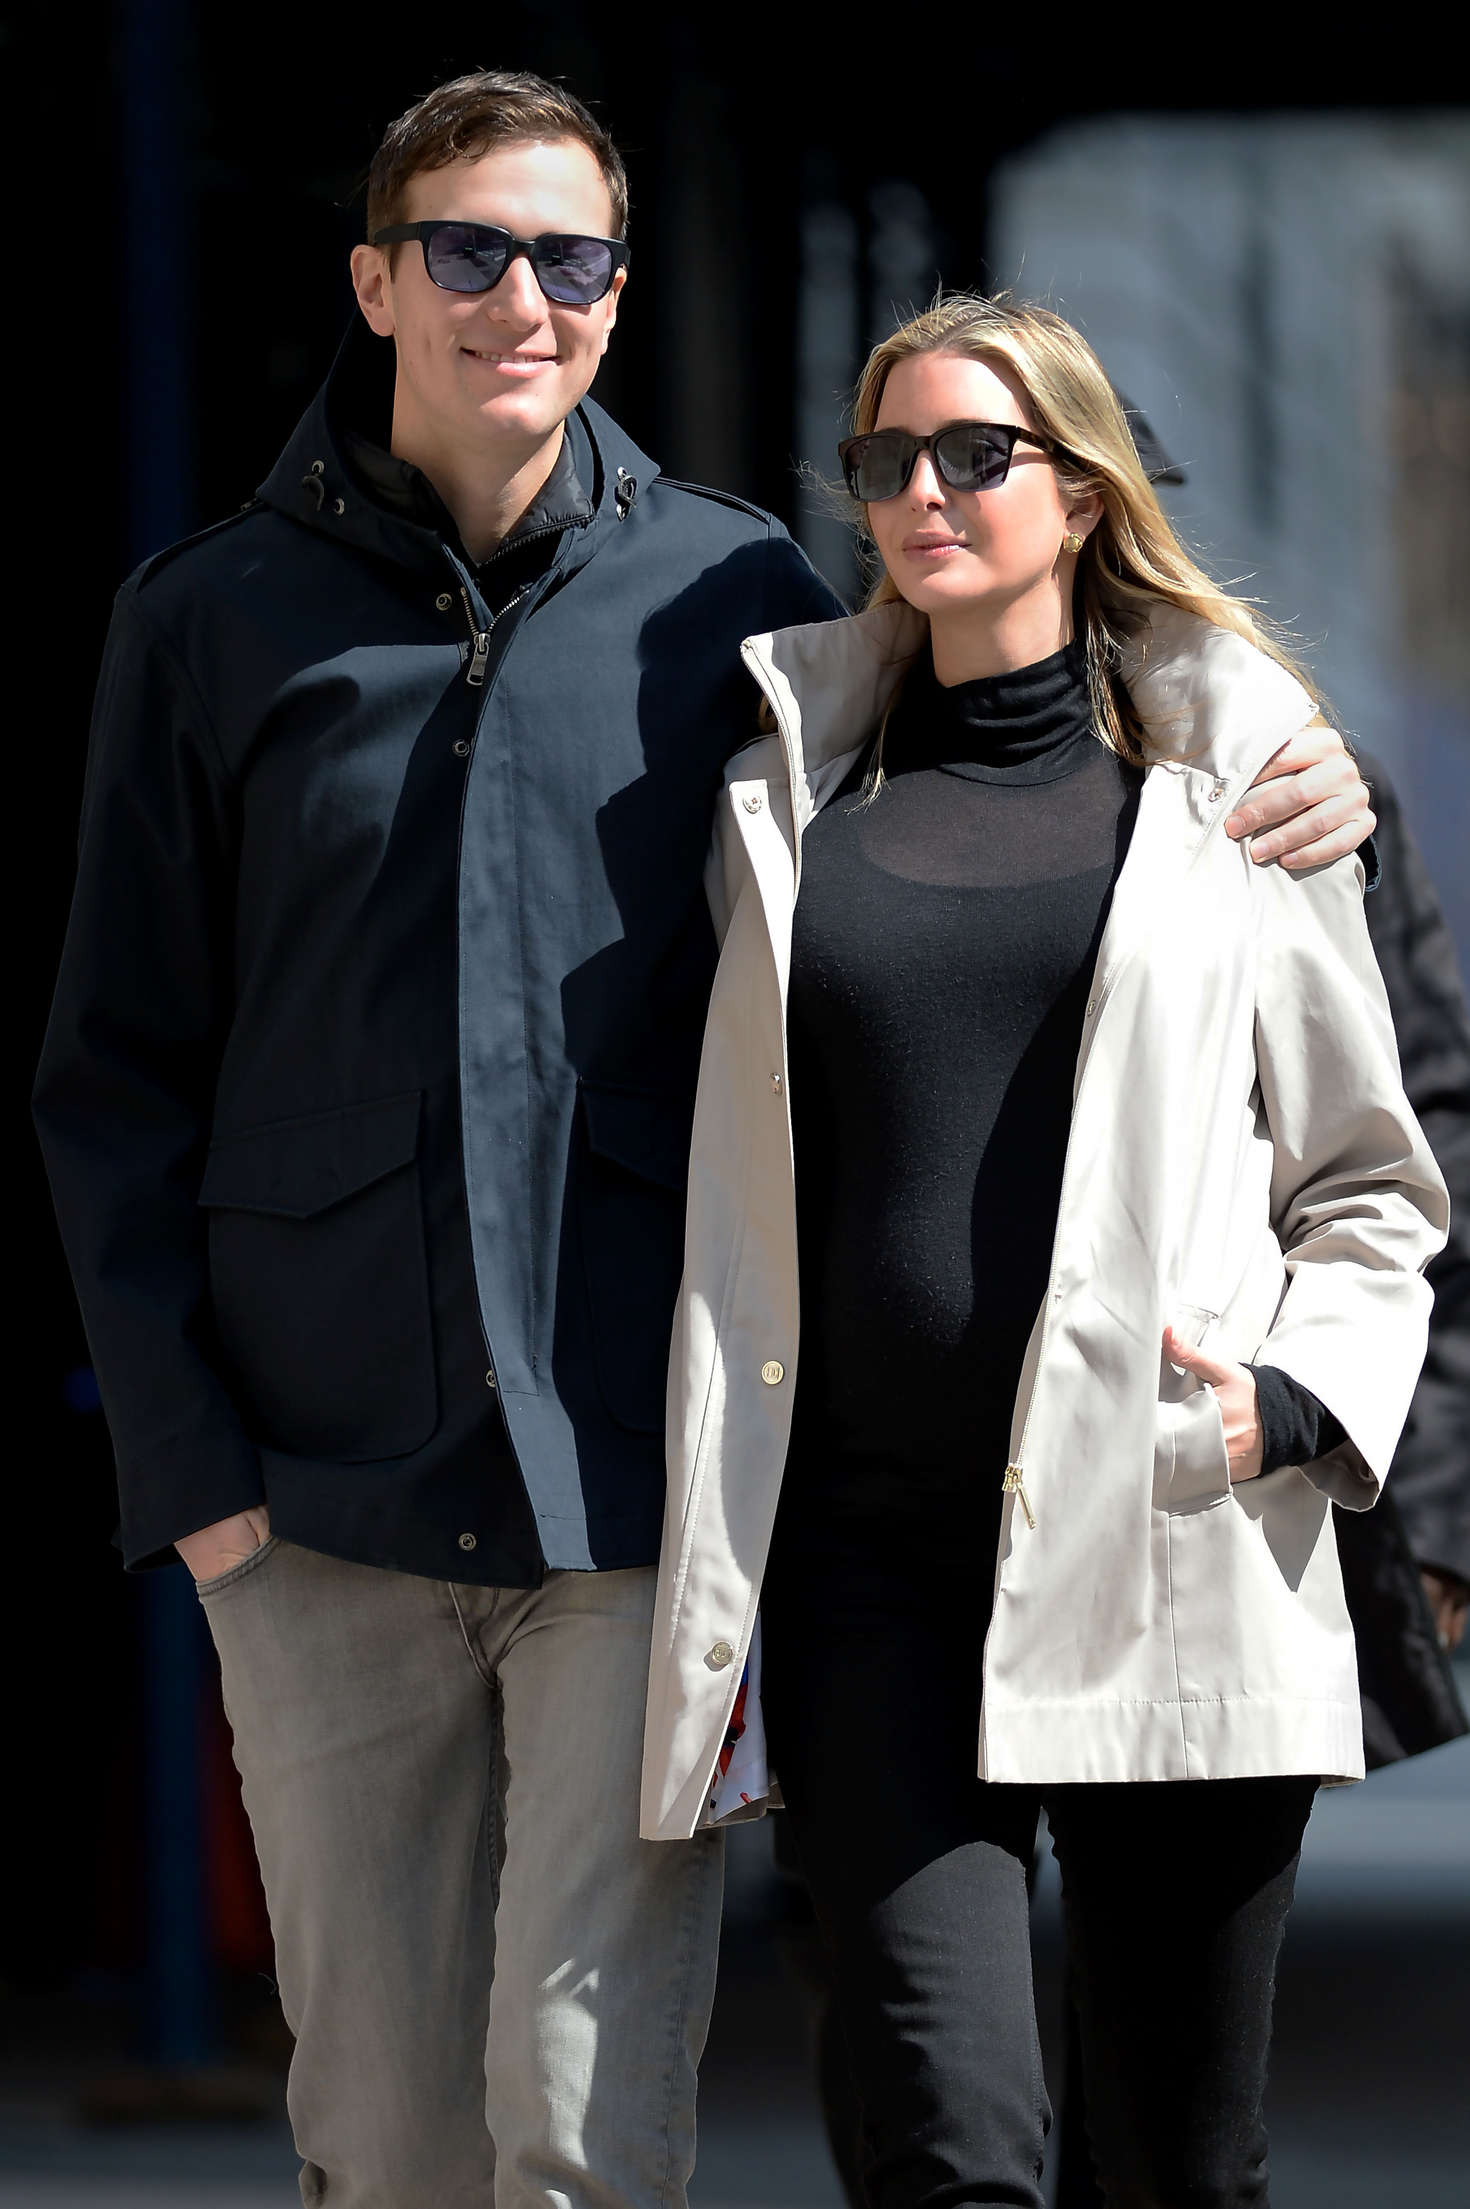 Ivanka Trump and Jared Kushner out in NYC